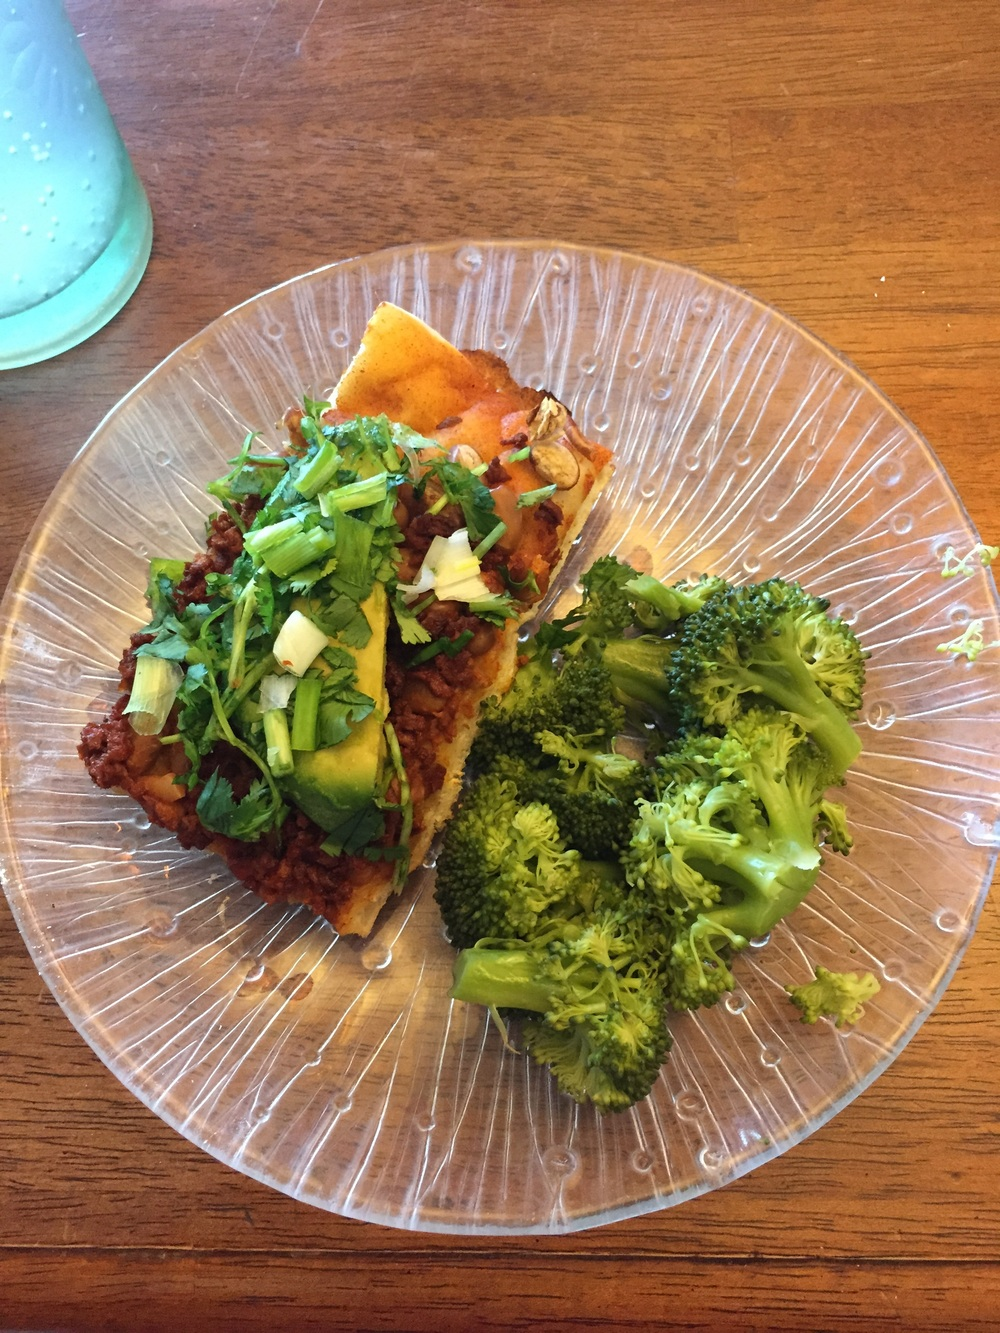 Served with avocado, cilantro, green onions, and lime. I love to have broccoli on the side!